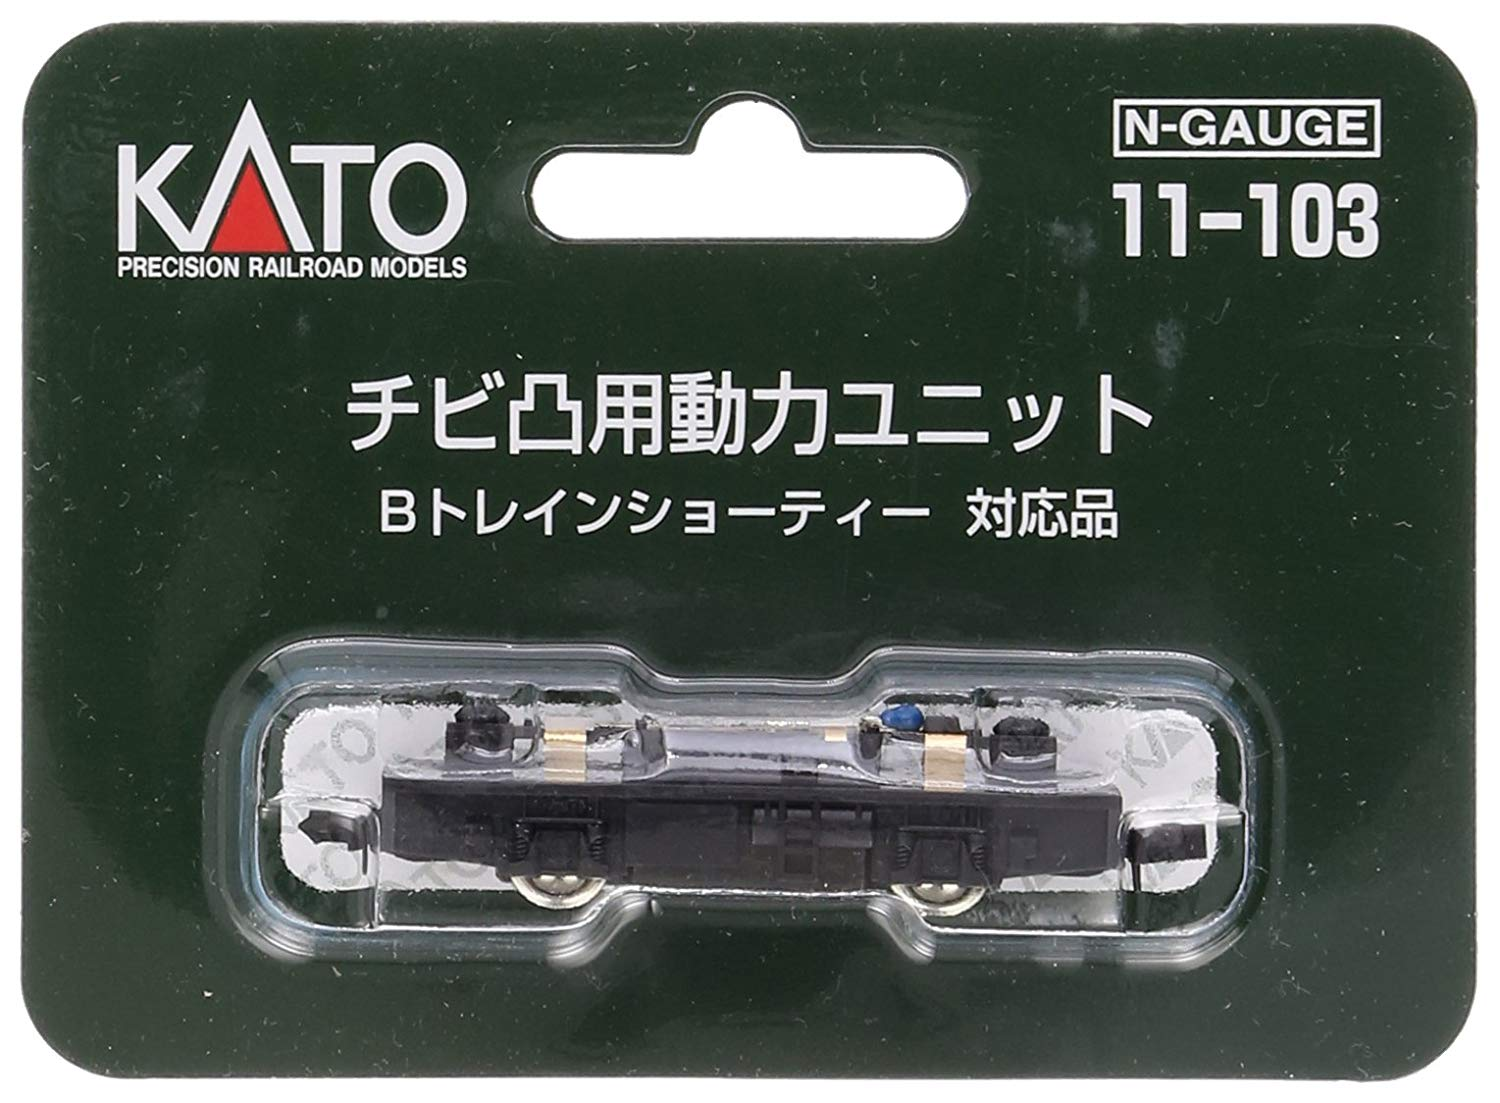 Powered Motorized Chassis KATO 11-103